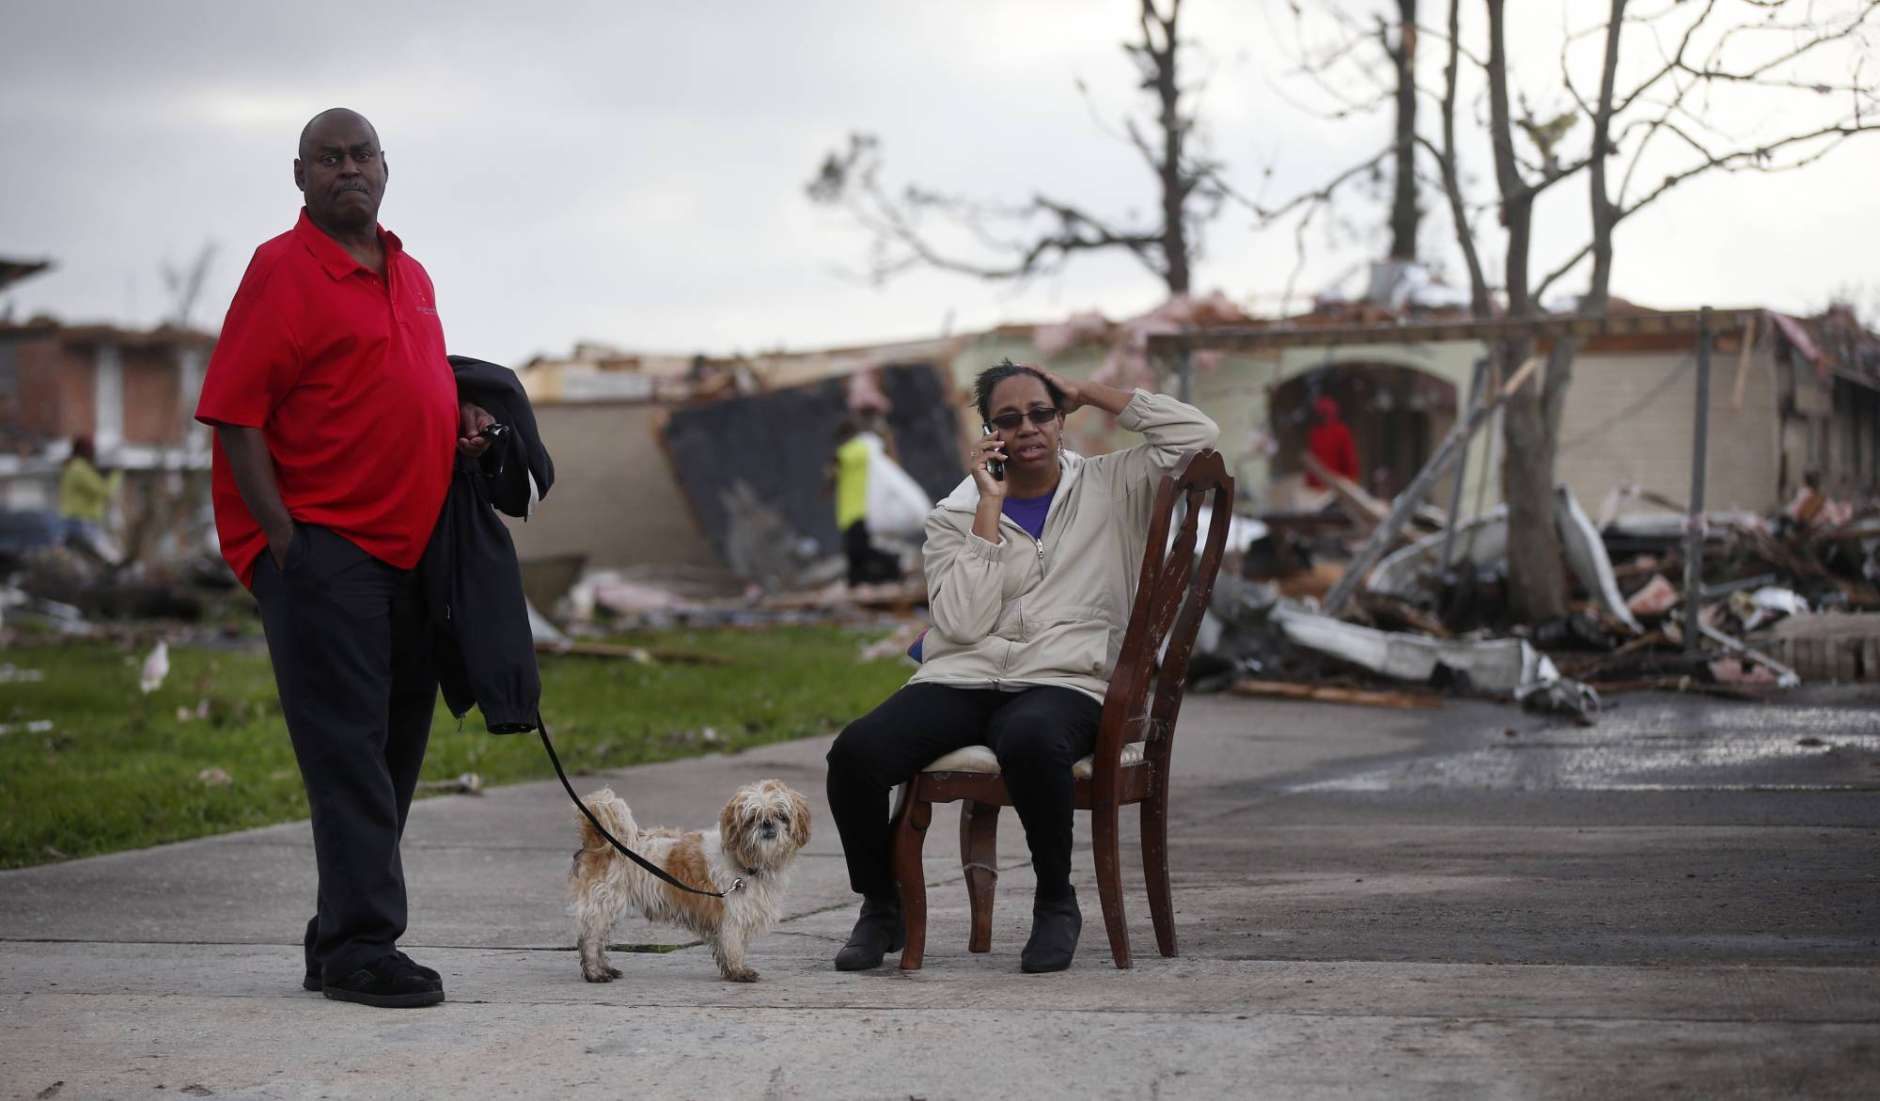 """Claire White sits in a chair and talks on the phone next to her husband Roy White and dog """"JD"""" across the street from their destroyed home after a tornado tore through the eastern neighborhood in New Orleans, Tuesday, Feb. 7, 2017. Gov. John Bel Edwards has declared a state of emergency for Louisiana after a severe storm moved across the state's southeast corner, including the parishes of Ascension, Livingston, Orleans, St. James, St. Tammany and Tangipahoa. (AP Photo/Gerald Herbert)"""